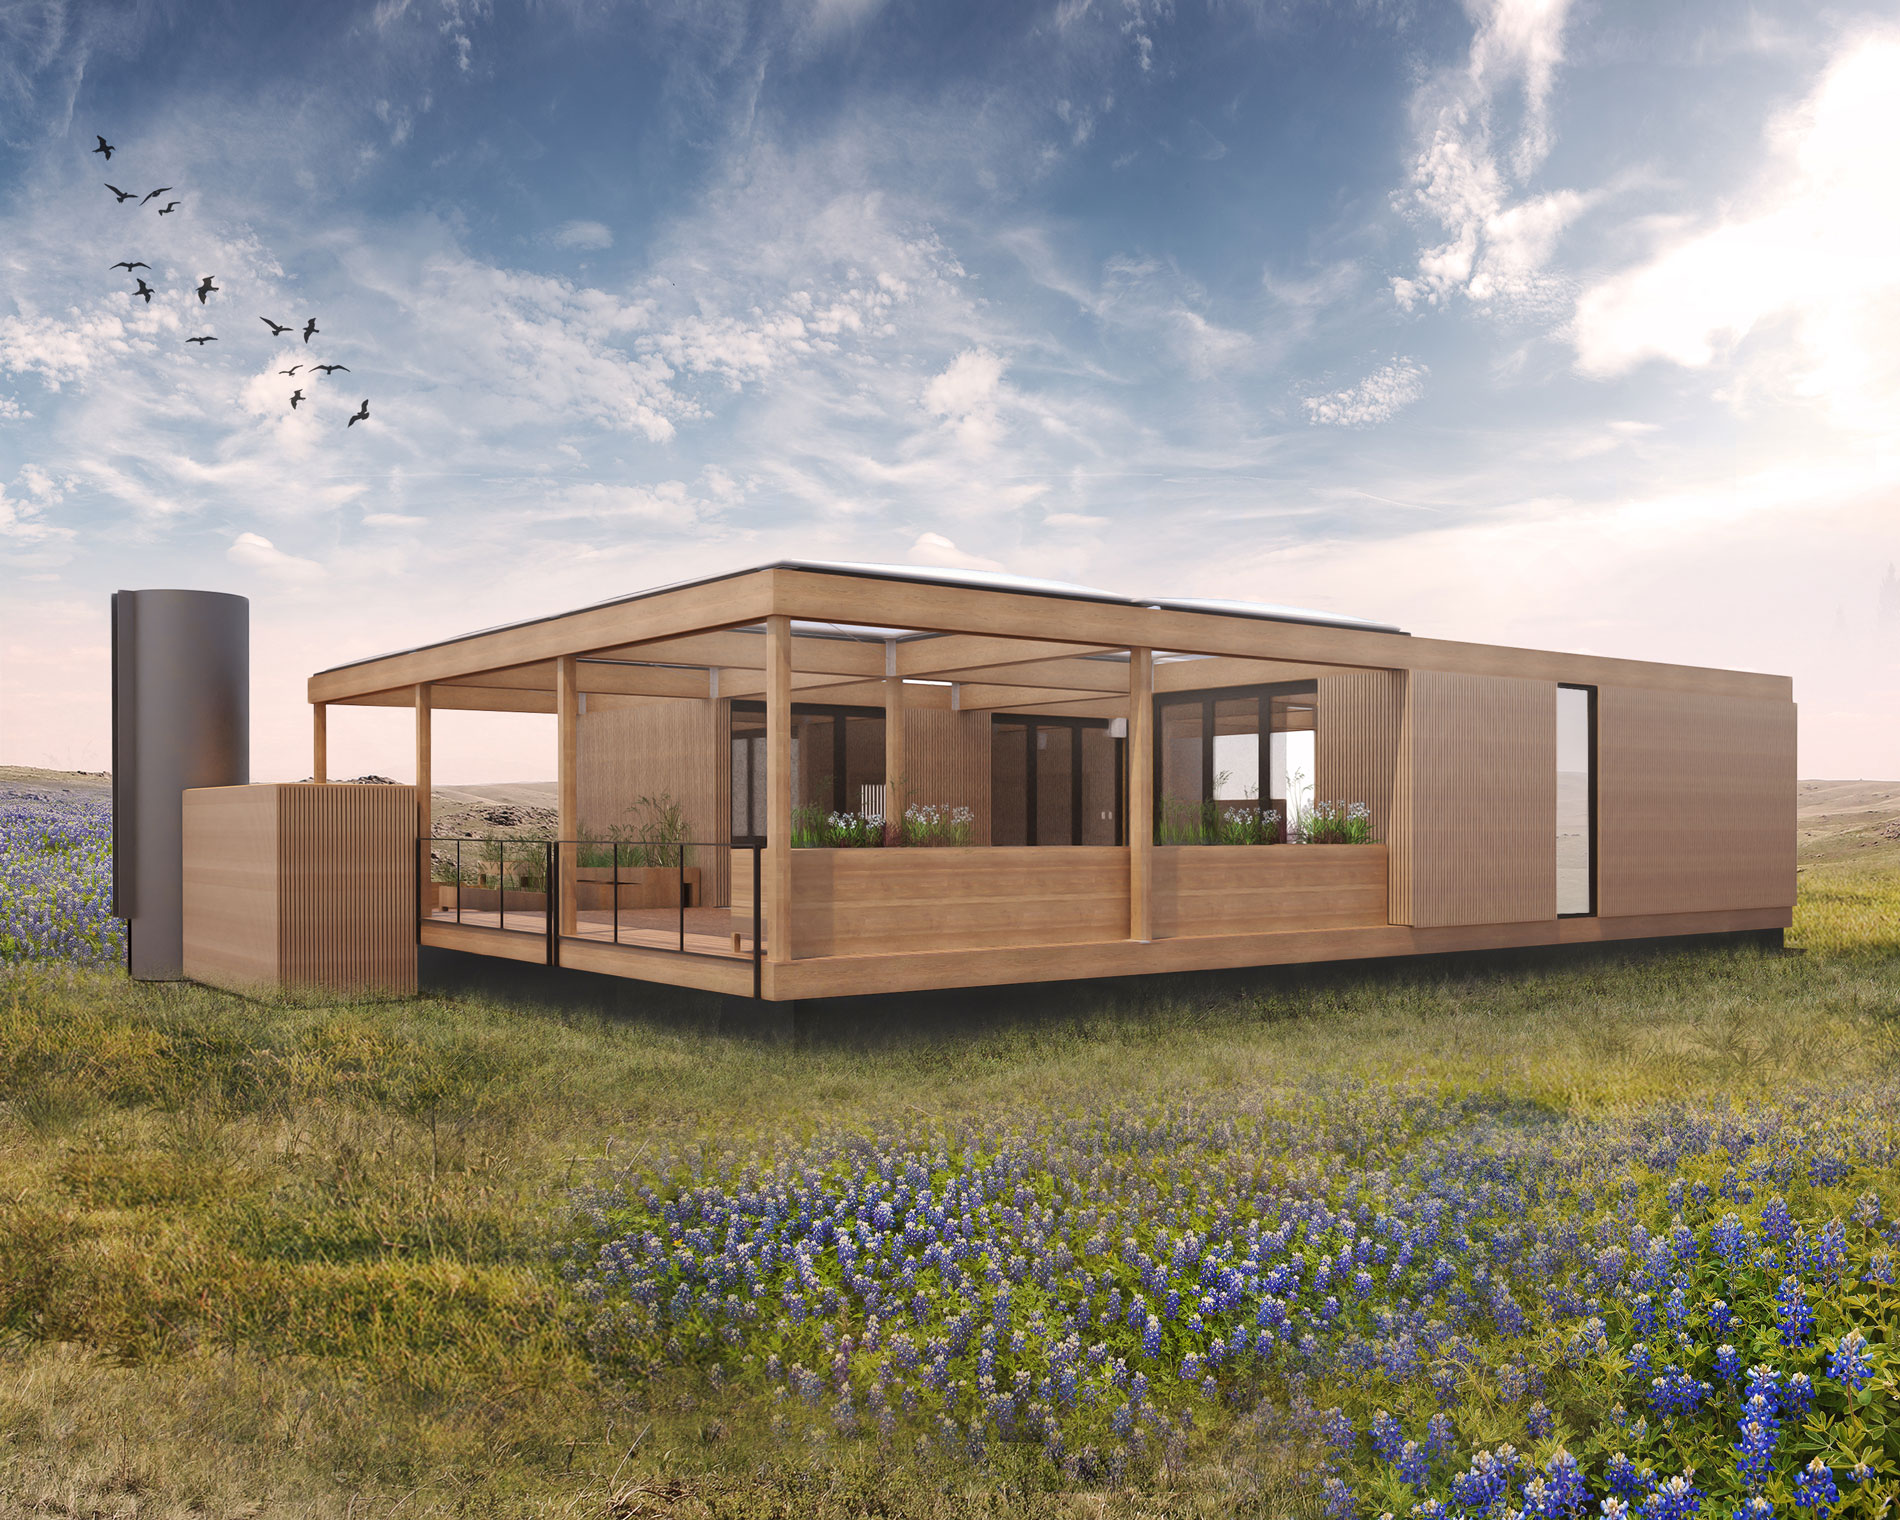 Texas Modular Home Will Run On Rainwater And Sunshine